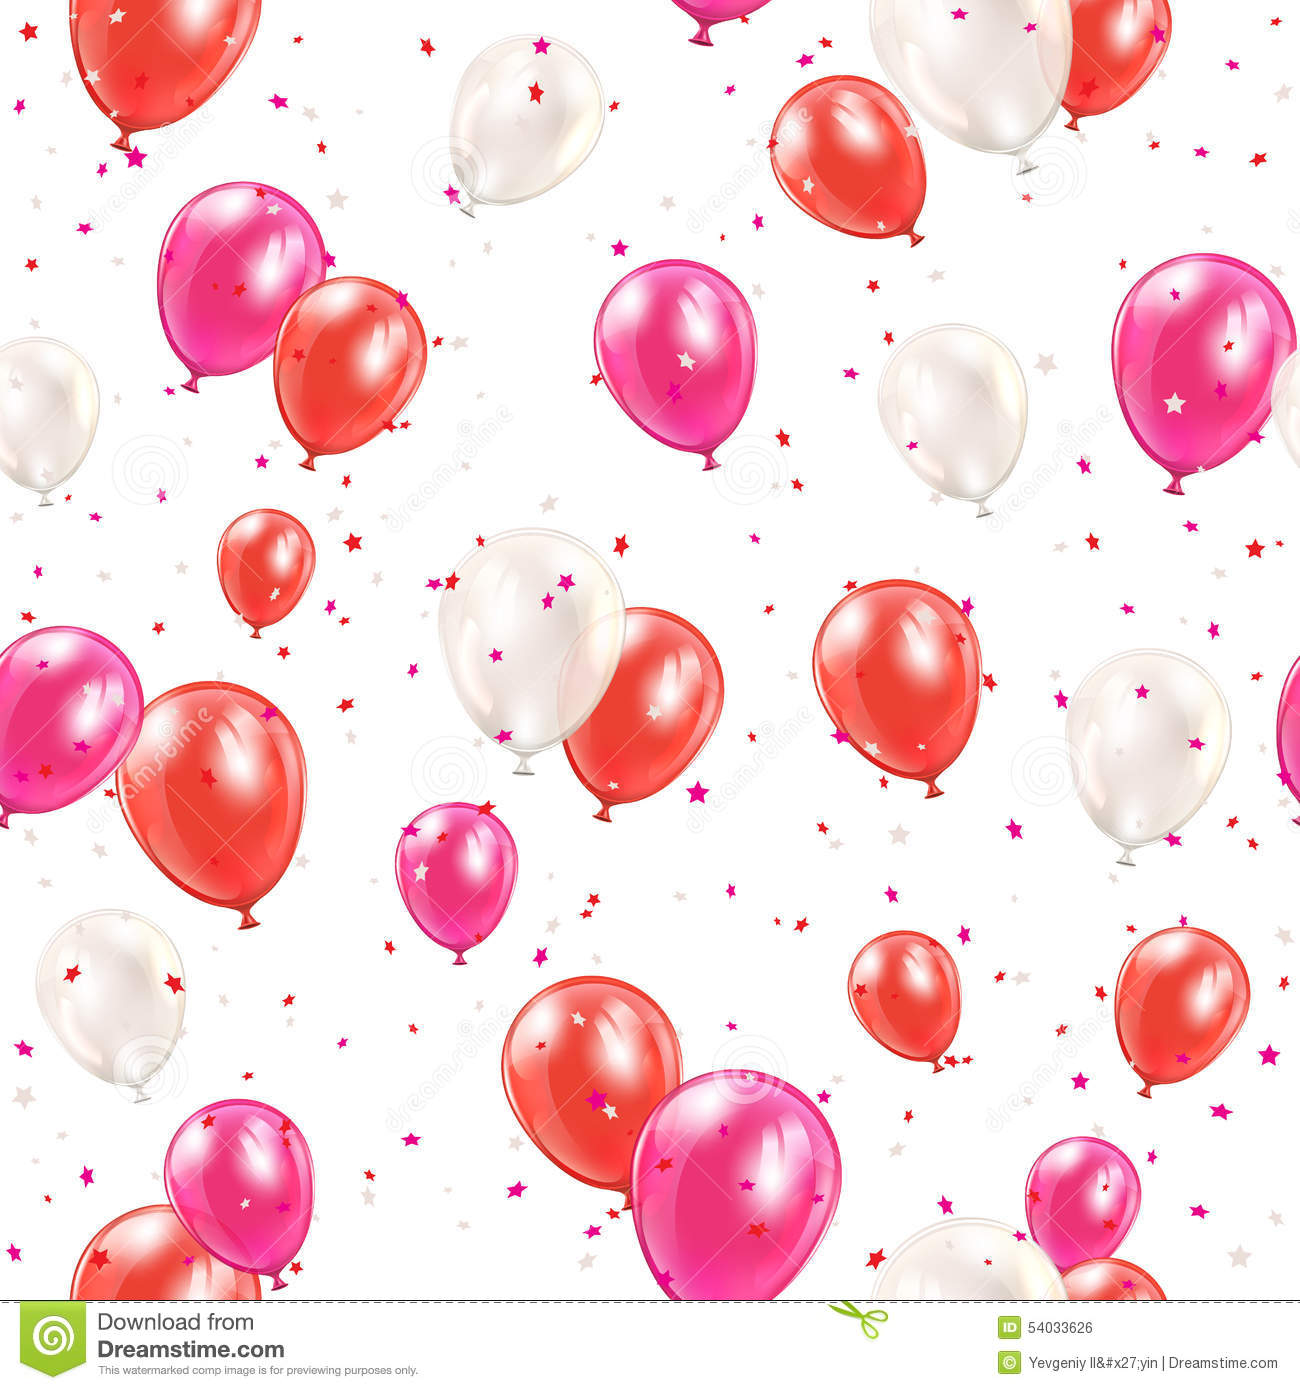 Seamless background with red balloons